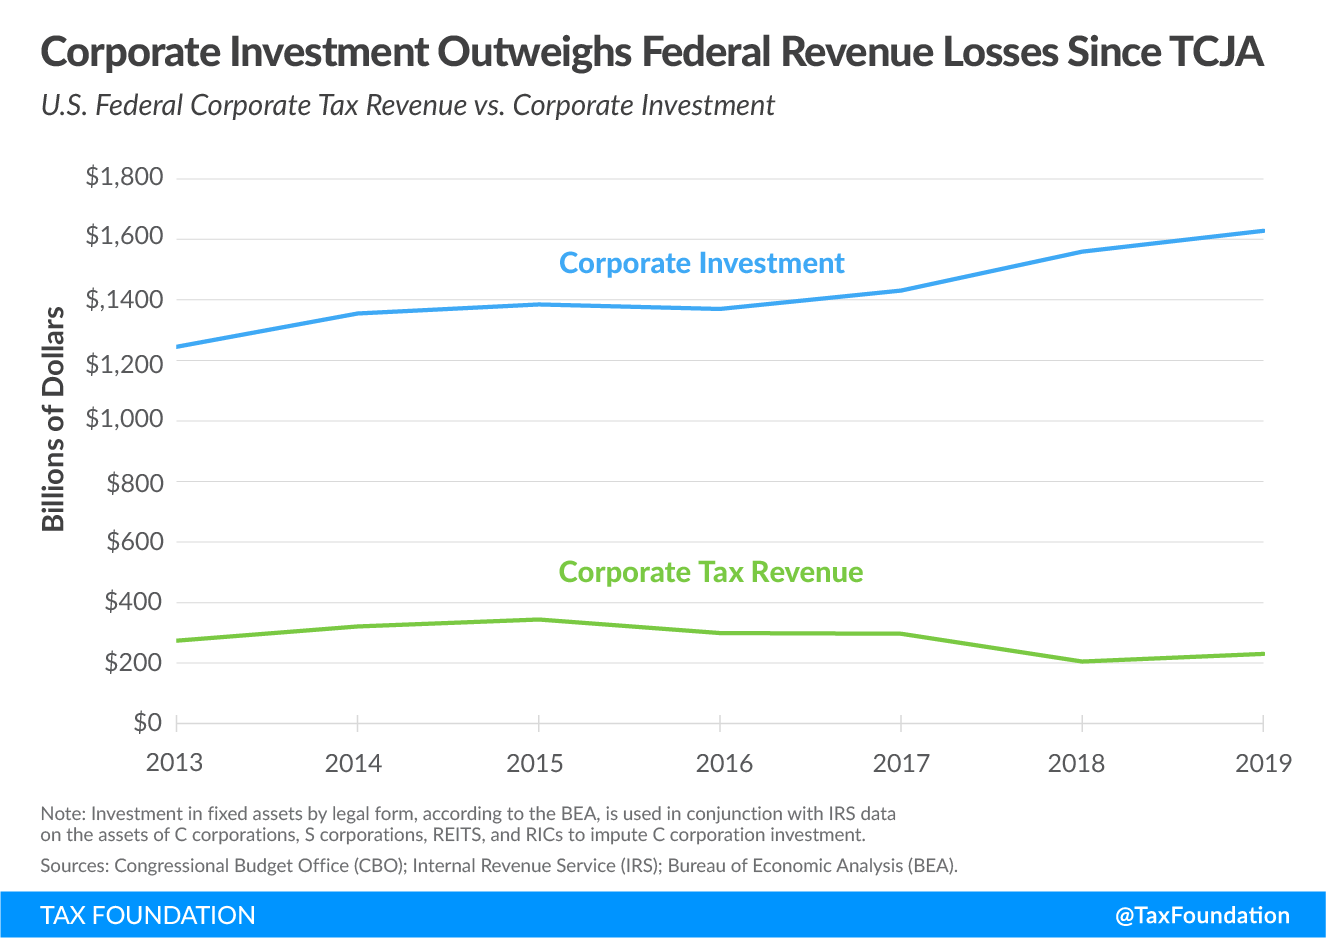 Tax Cuts and Jobs Act corporate investment and Tax Cuts and Jobs Act revenue loss data. Learn more about TCJA corporate revenues and TCJA corporate investments